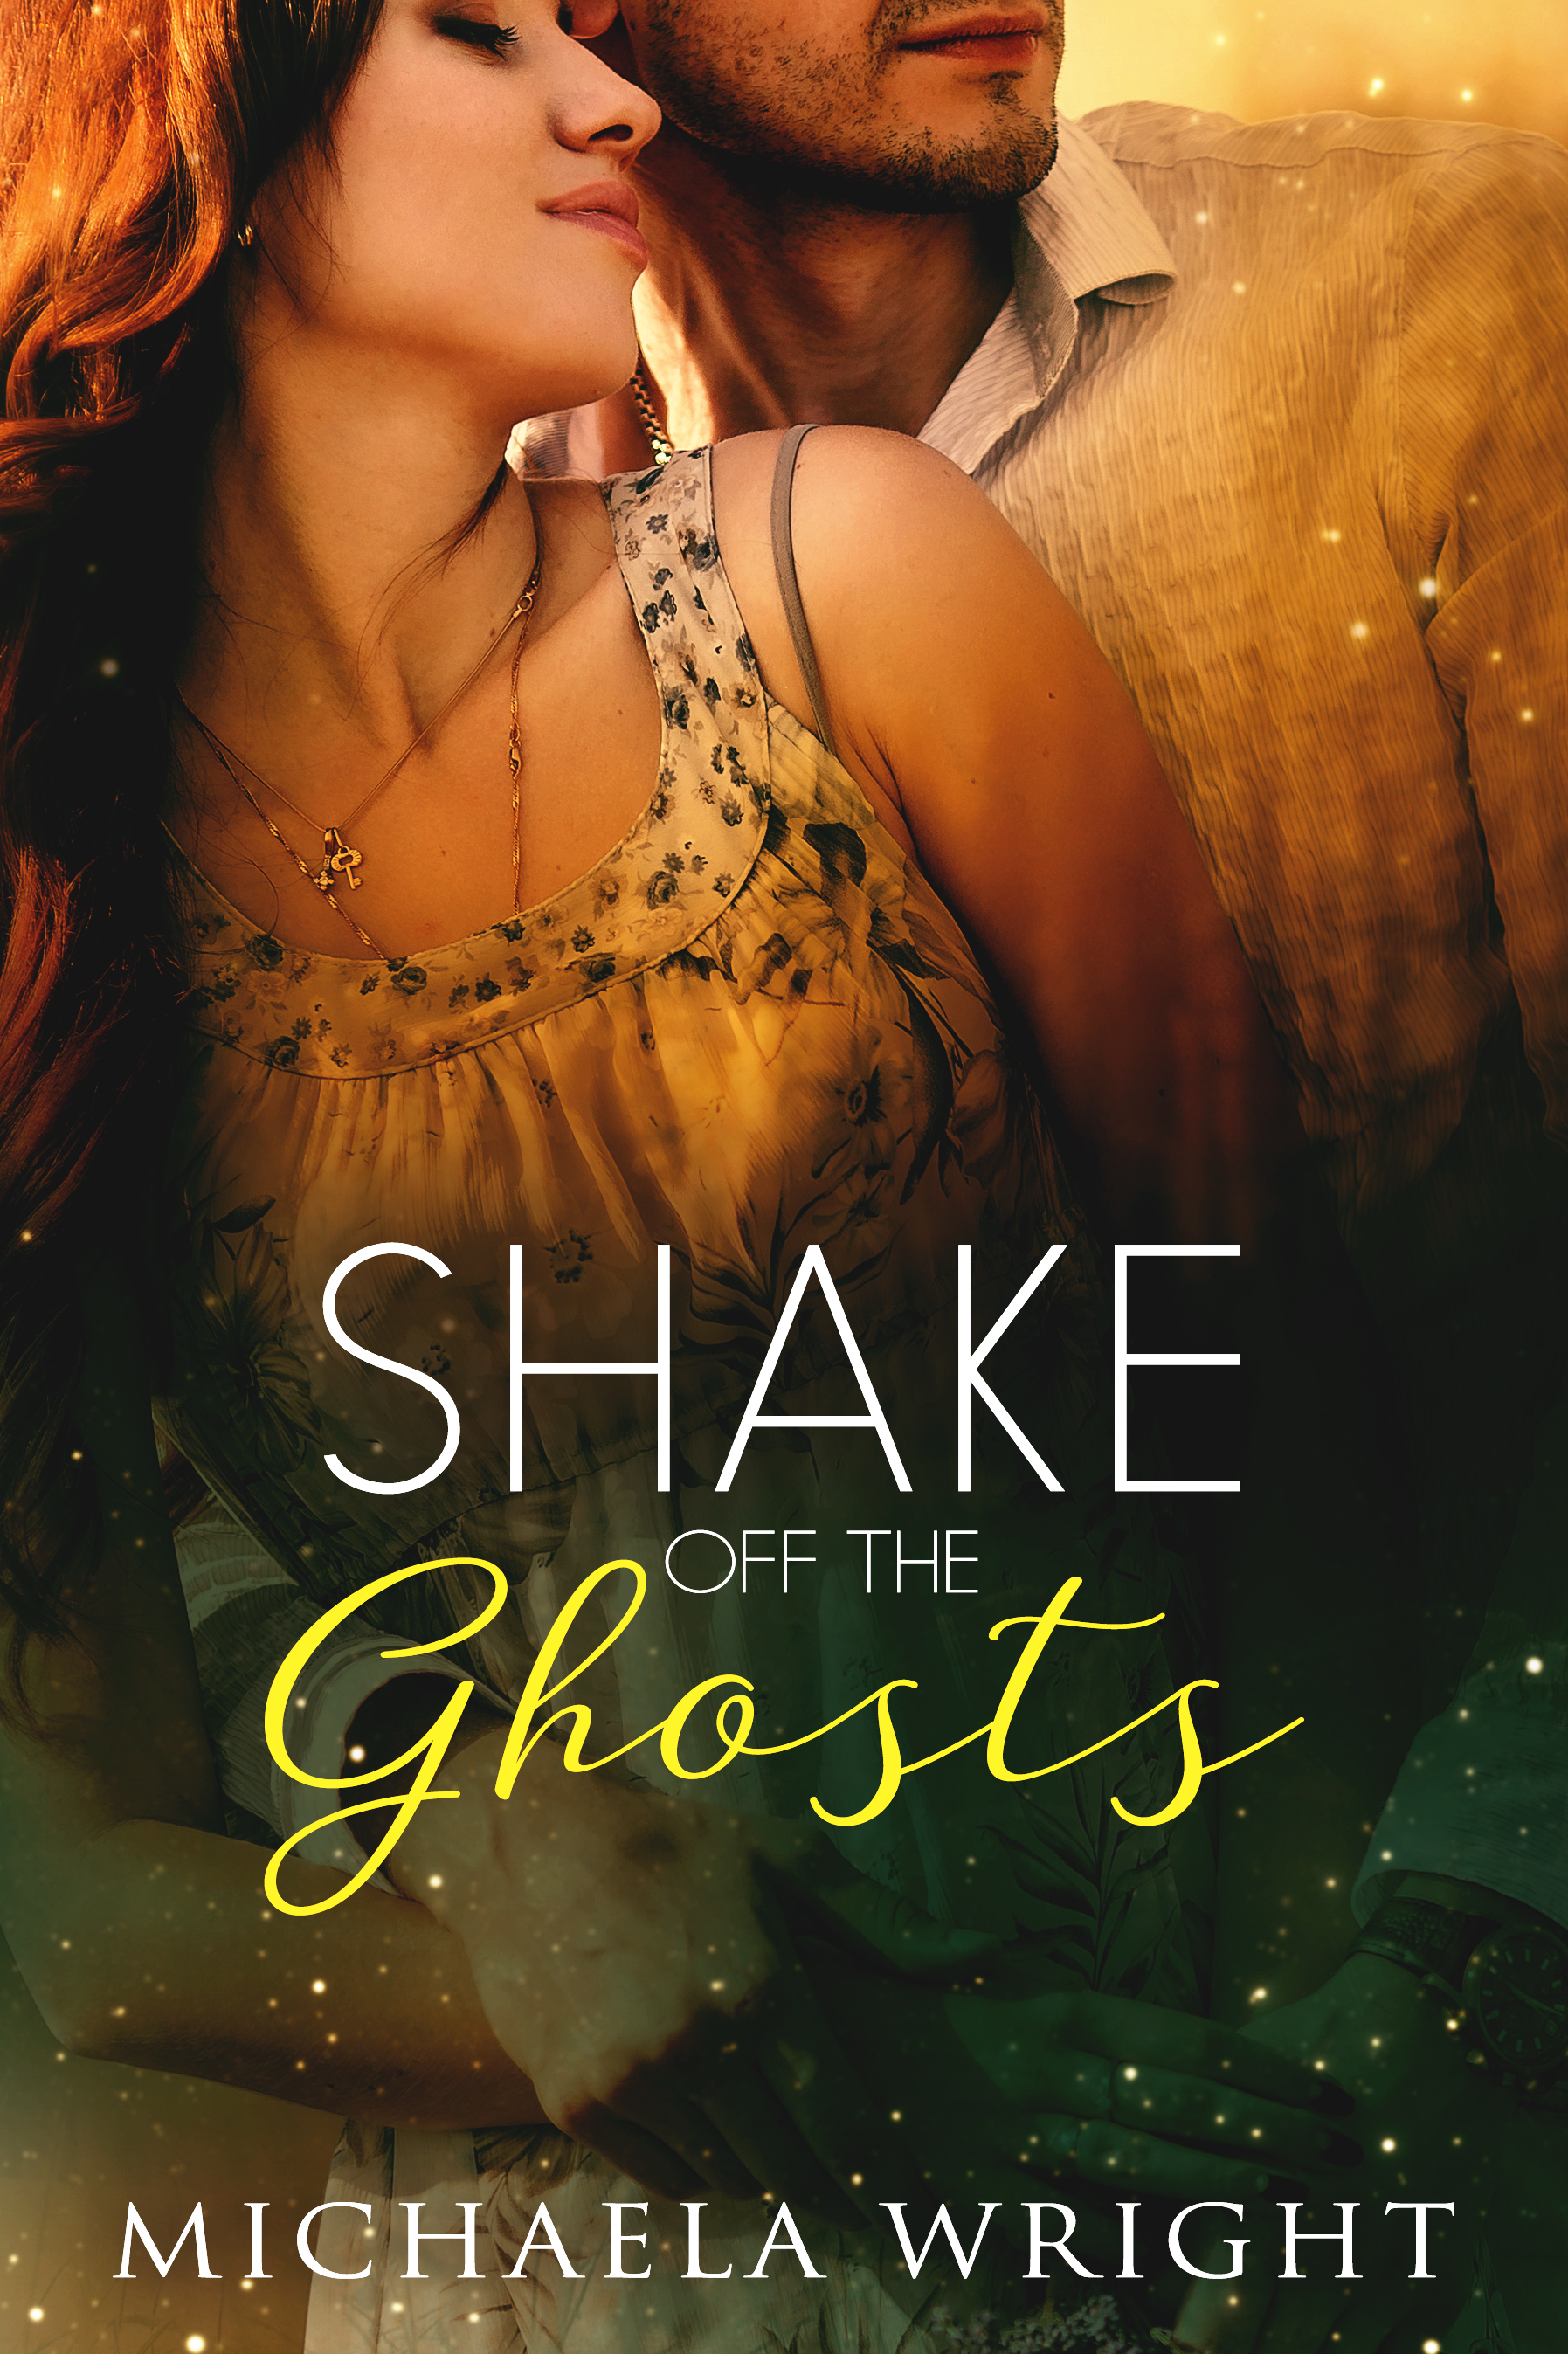 Shake Off the Ghosts by Michaela Wright